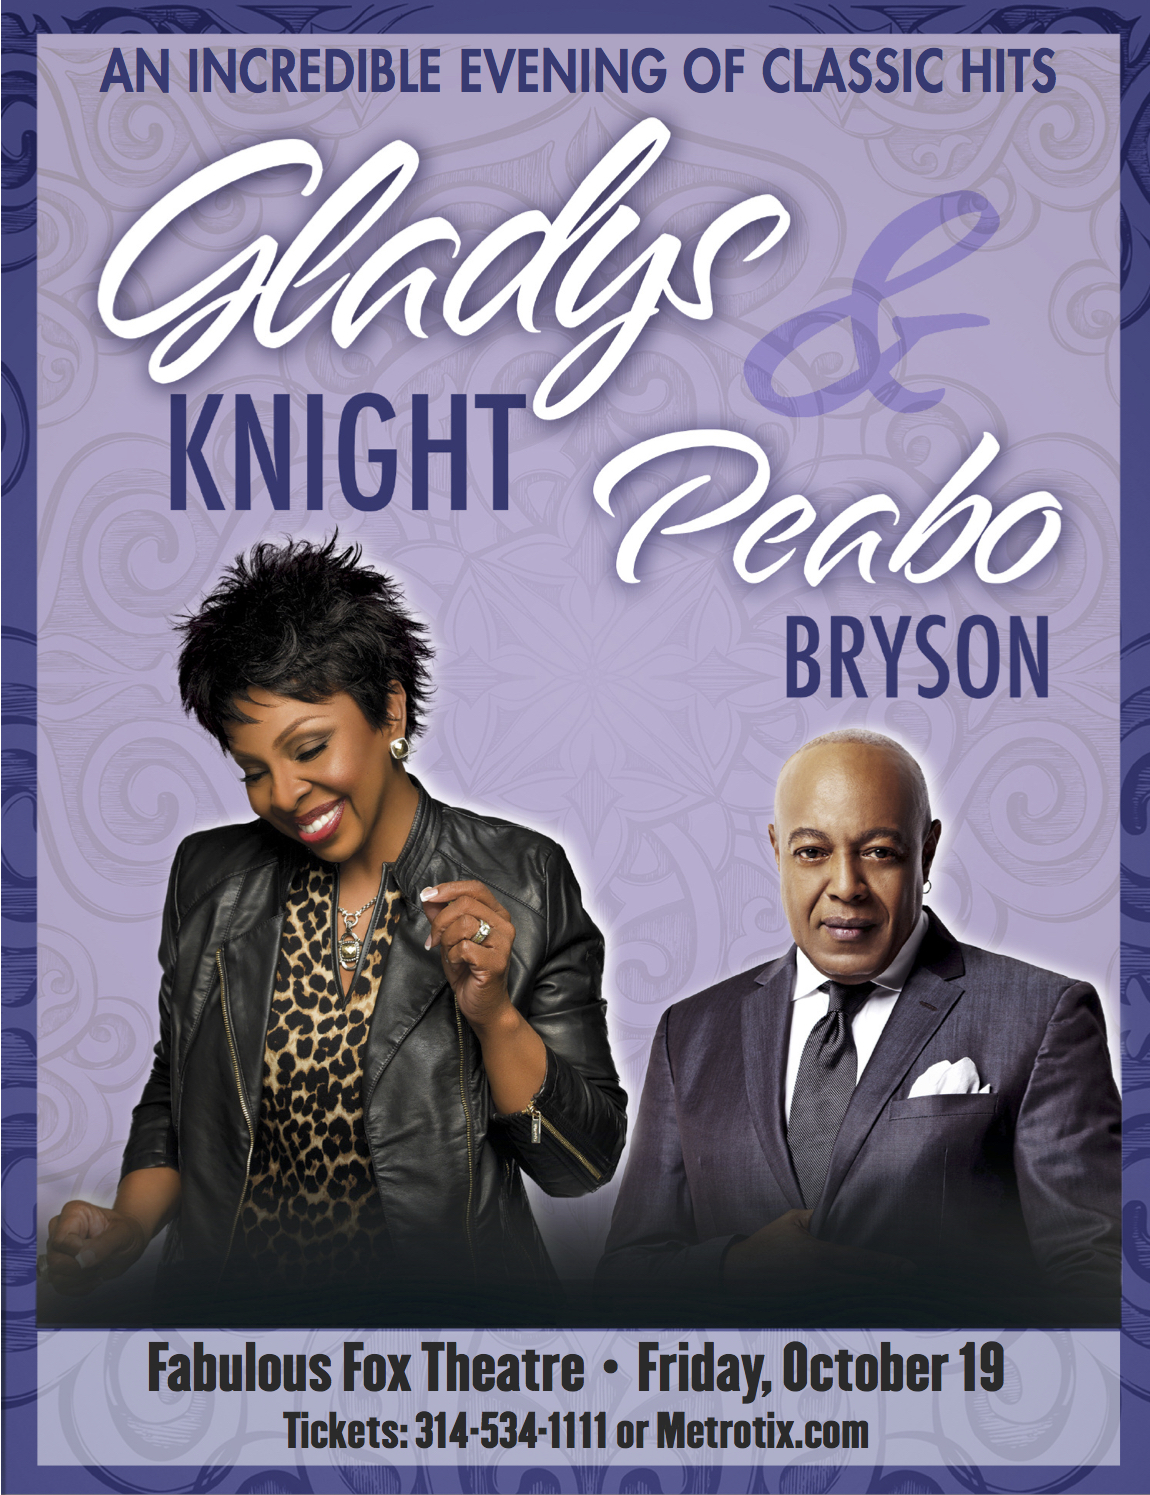 Gladys Knight and Peabo Bryson at the Fox